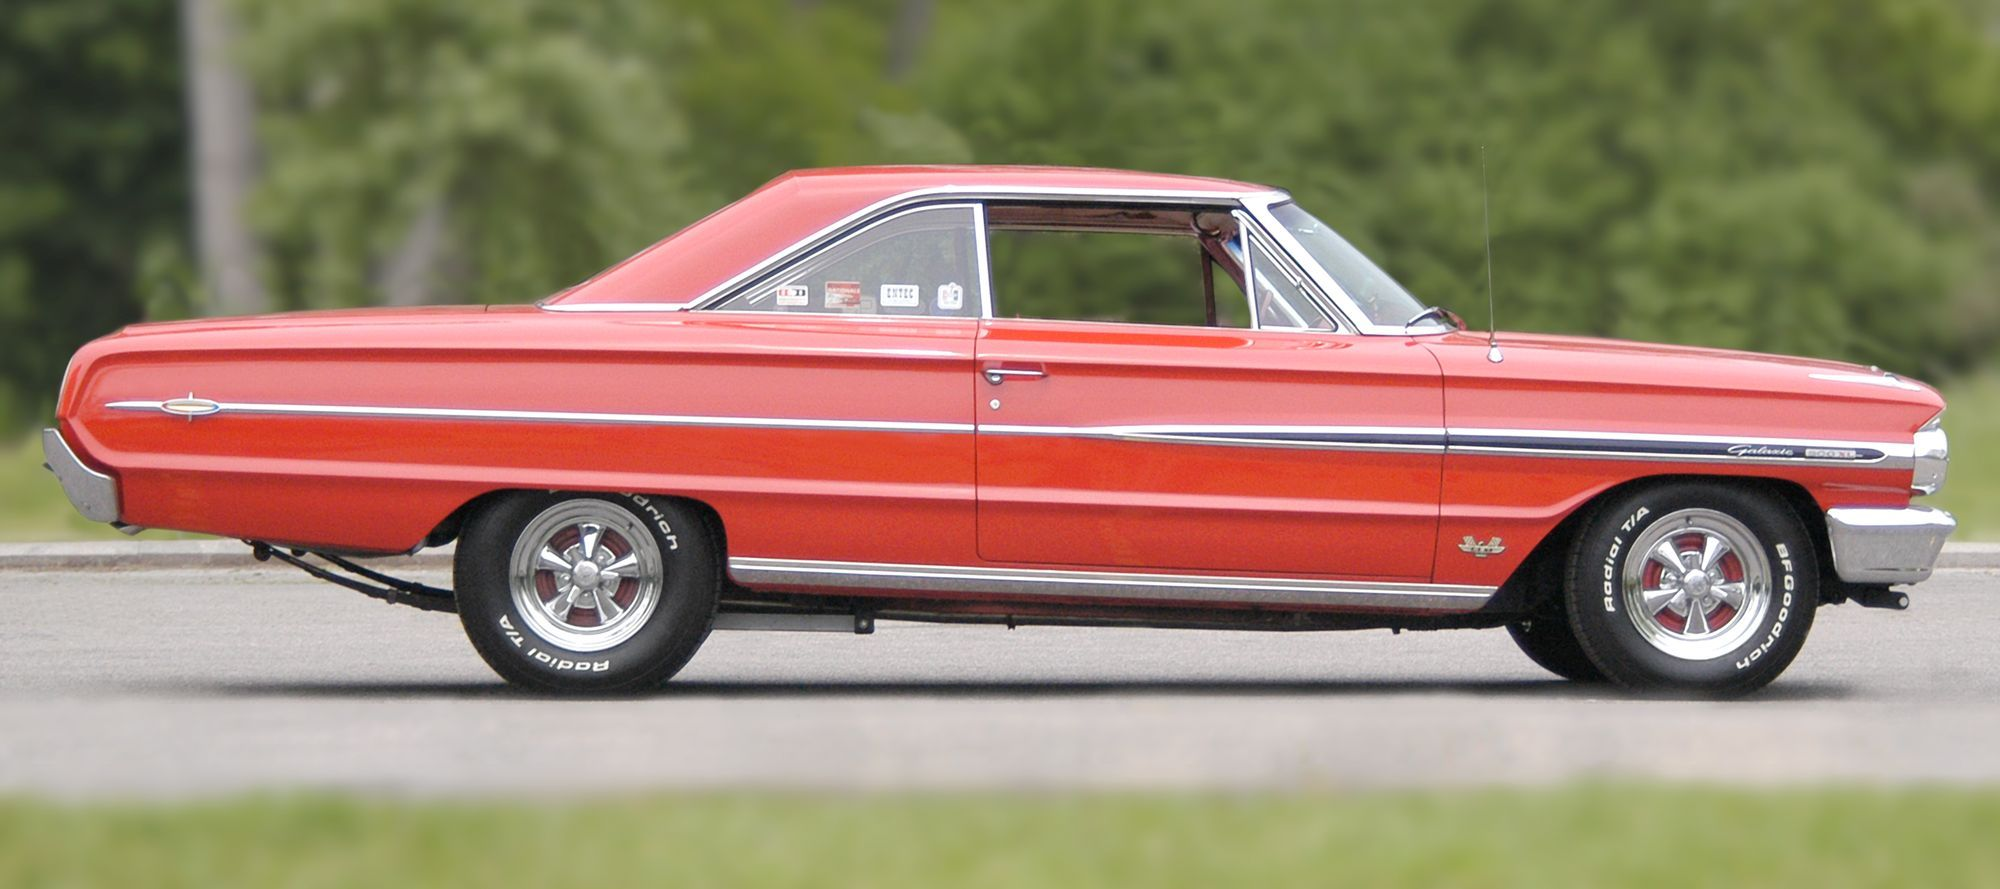 All In The Family For 54 Years A Long Beloved 1964 Ford Galaxie Ford Galaxie 1964 Ford Ford Classic Cars